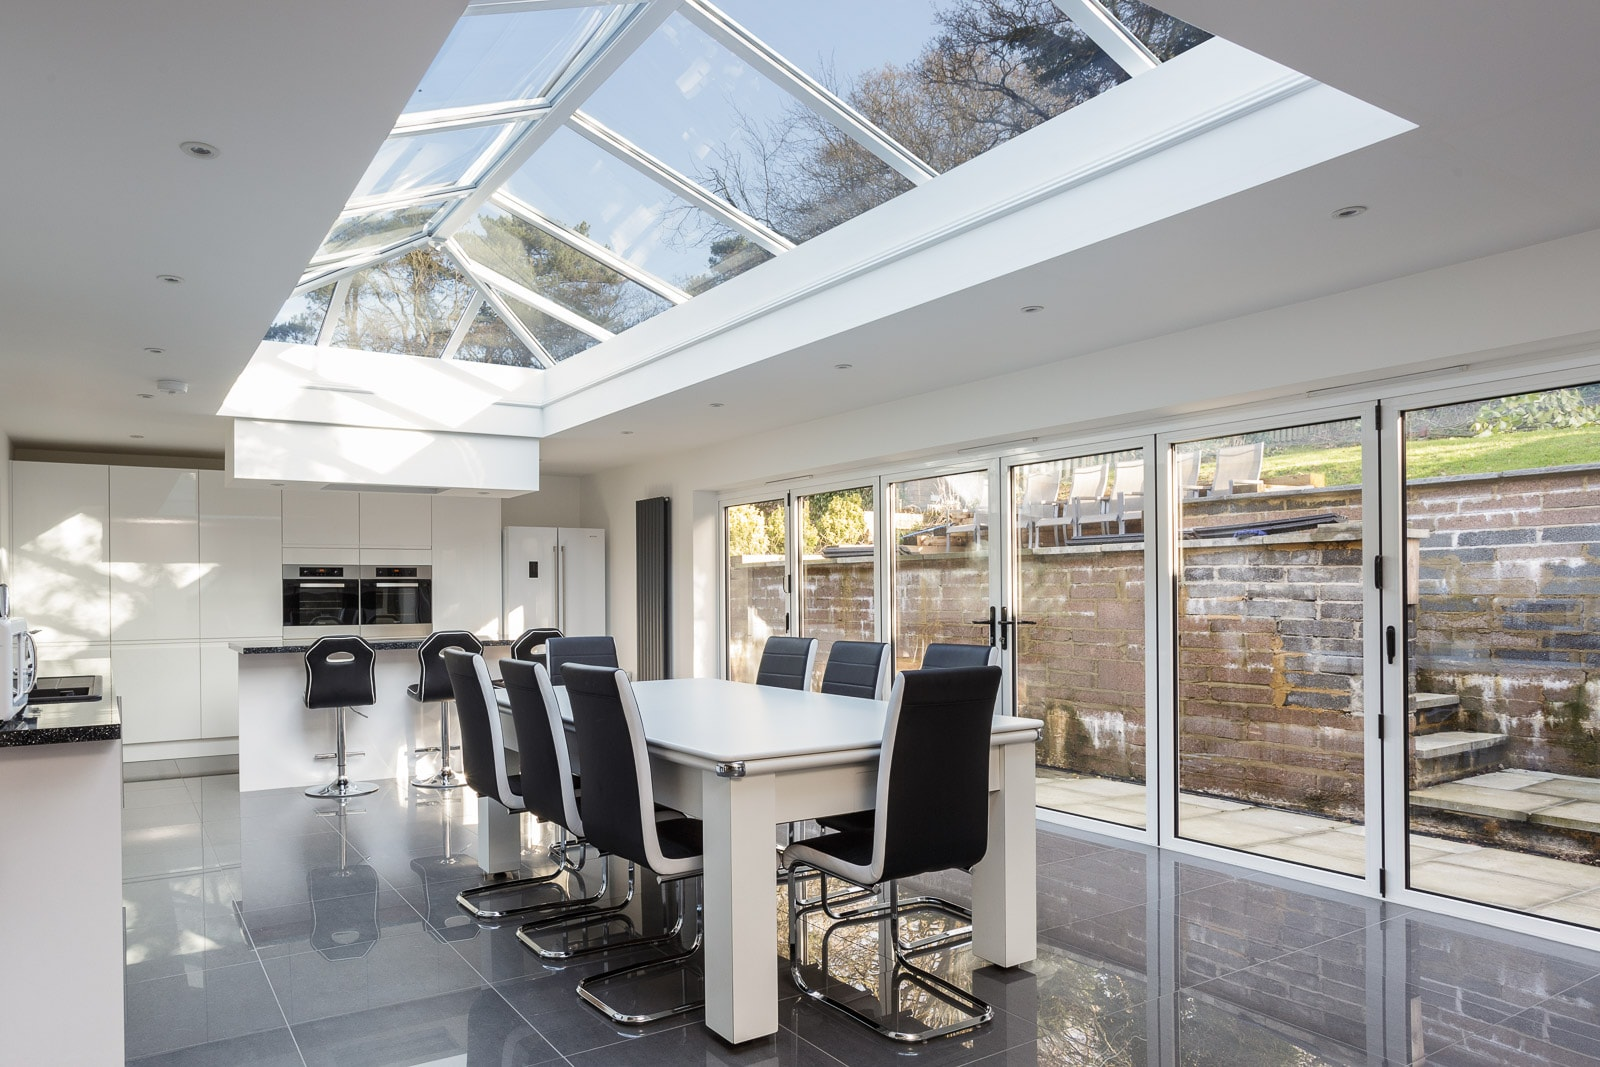 High specification modern kitchen or dining seating area with glass ceiling and walls